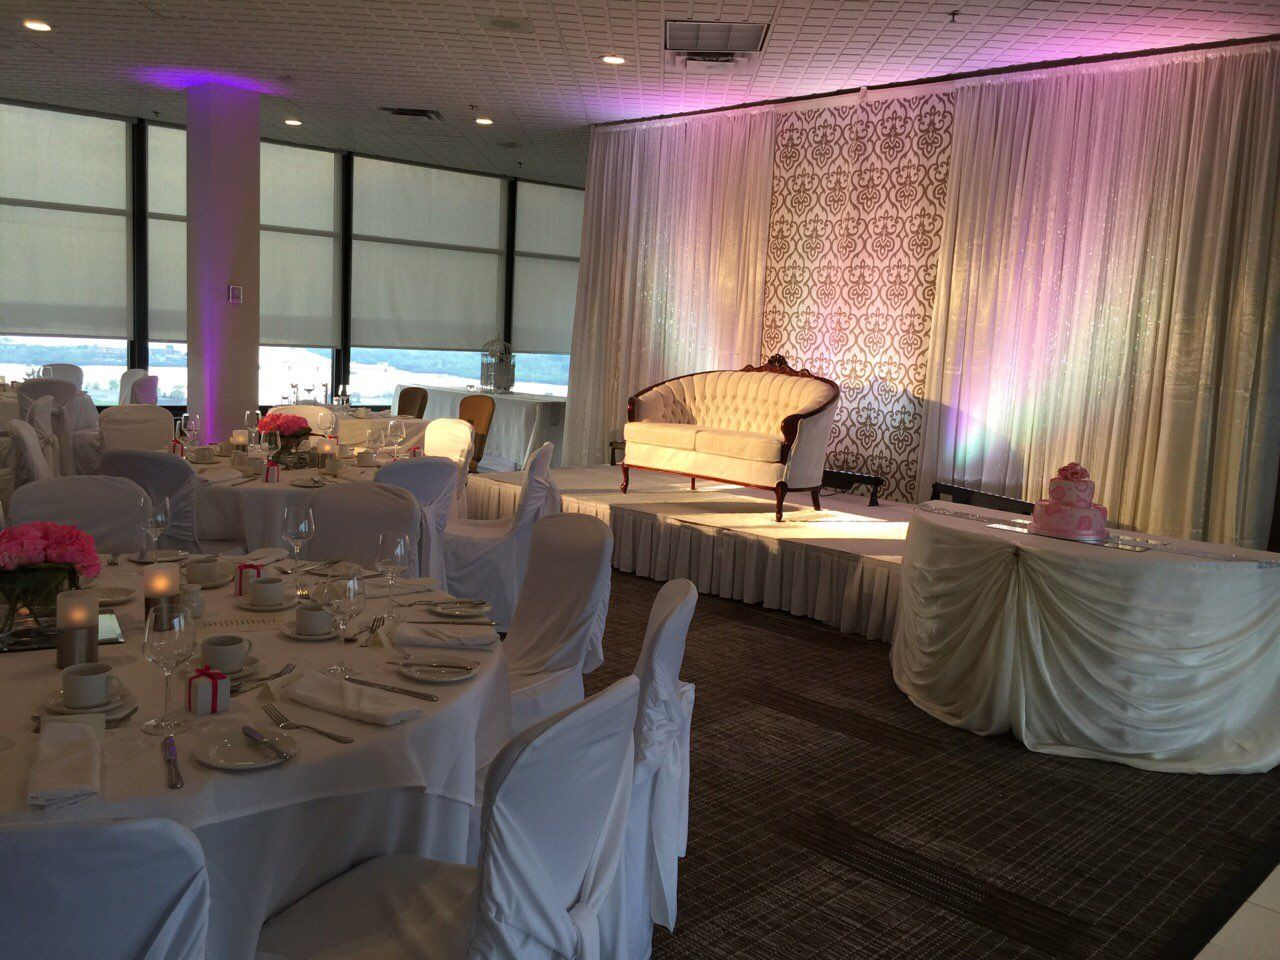 A S Wedding Reception At Delta Hotel Ottawa On By Design